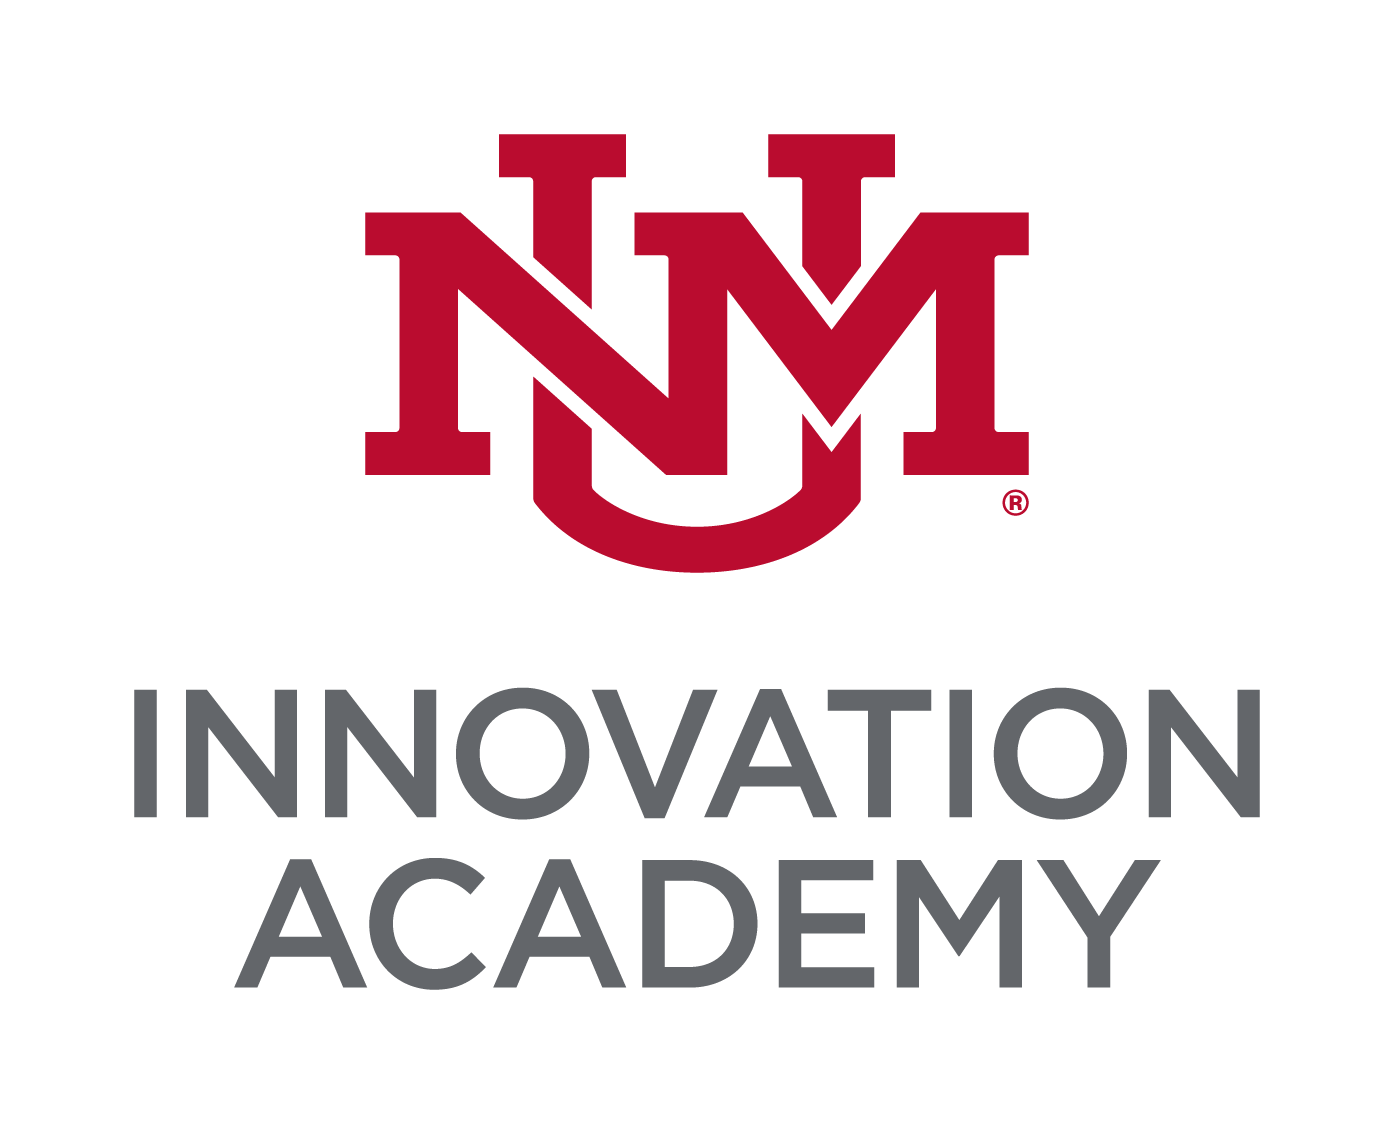 UNM_InnovationAcademy_Vertical_RGB.png